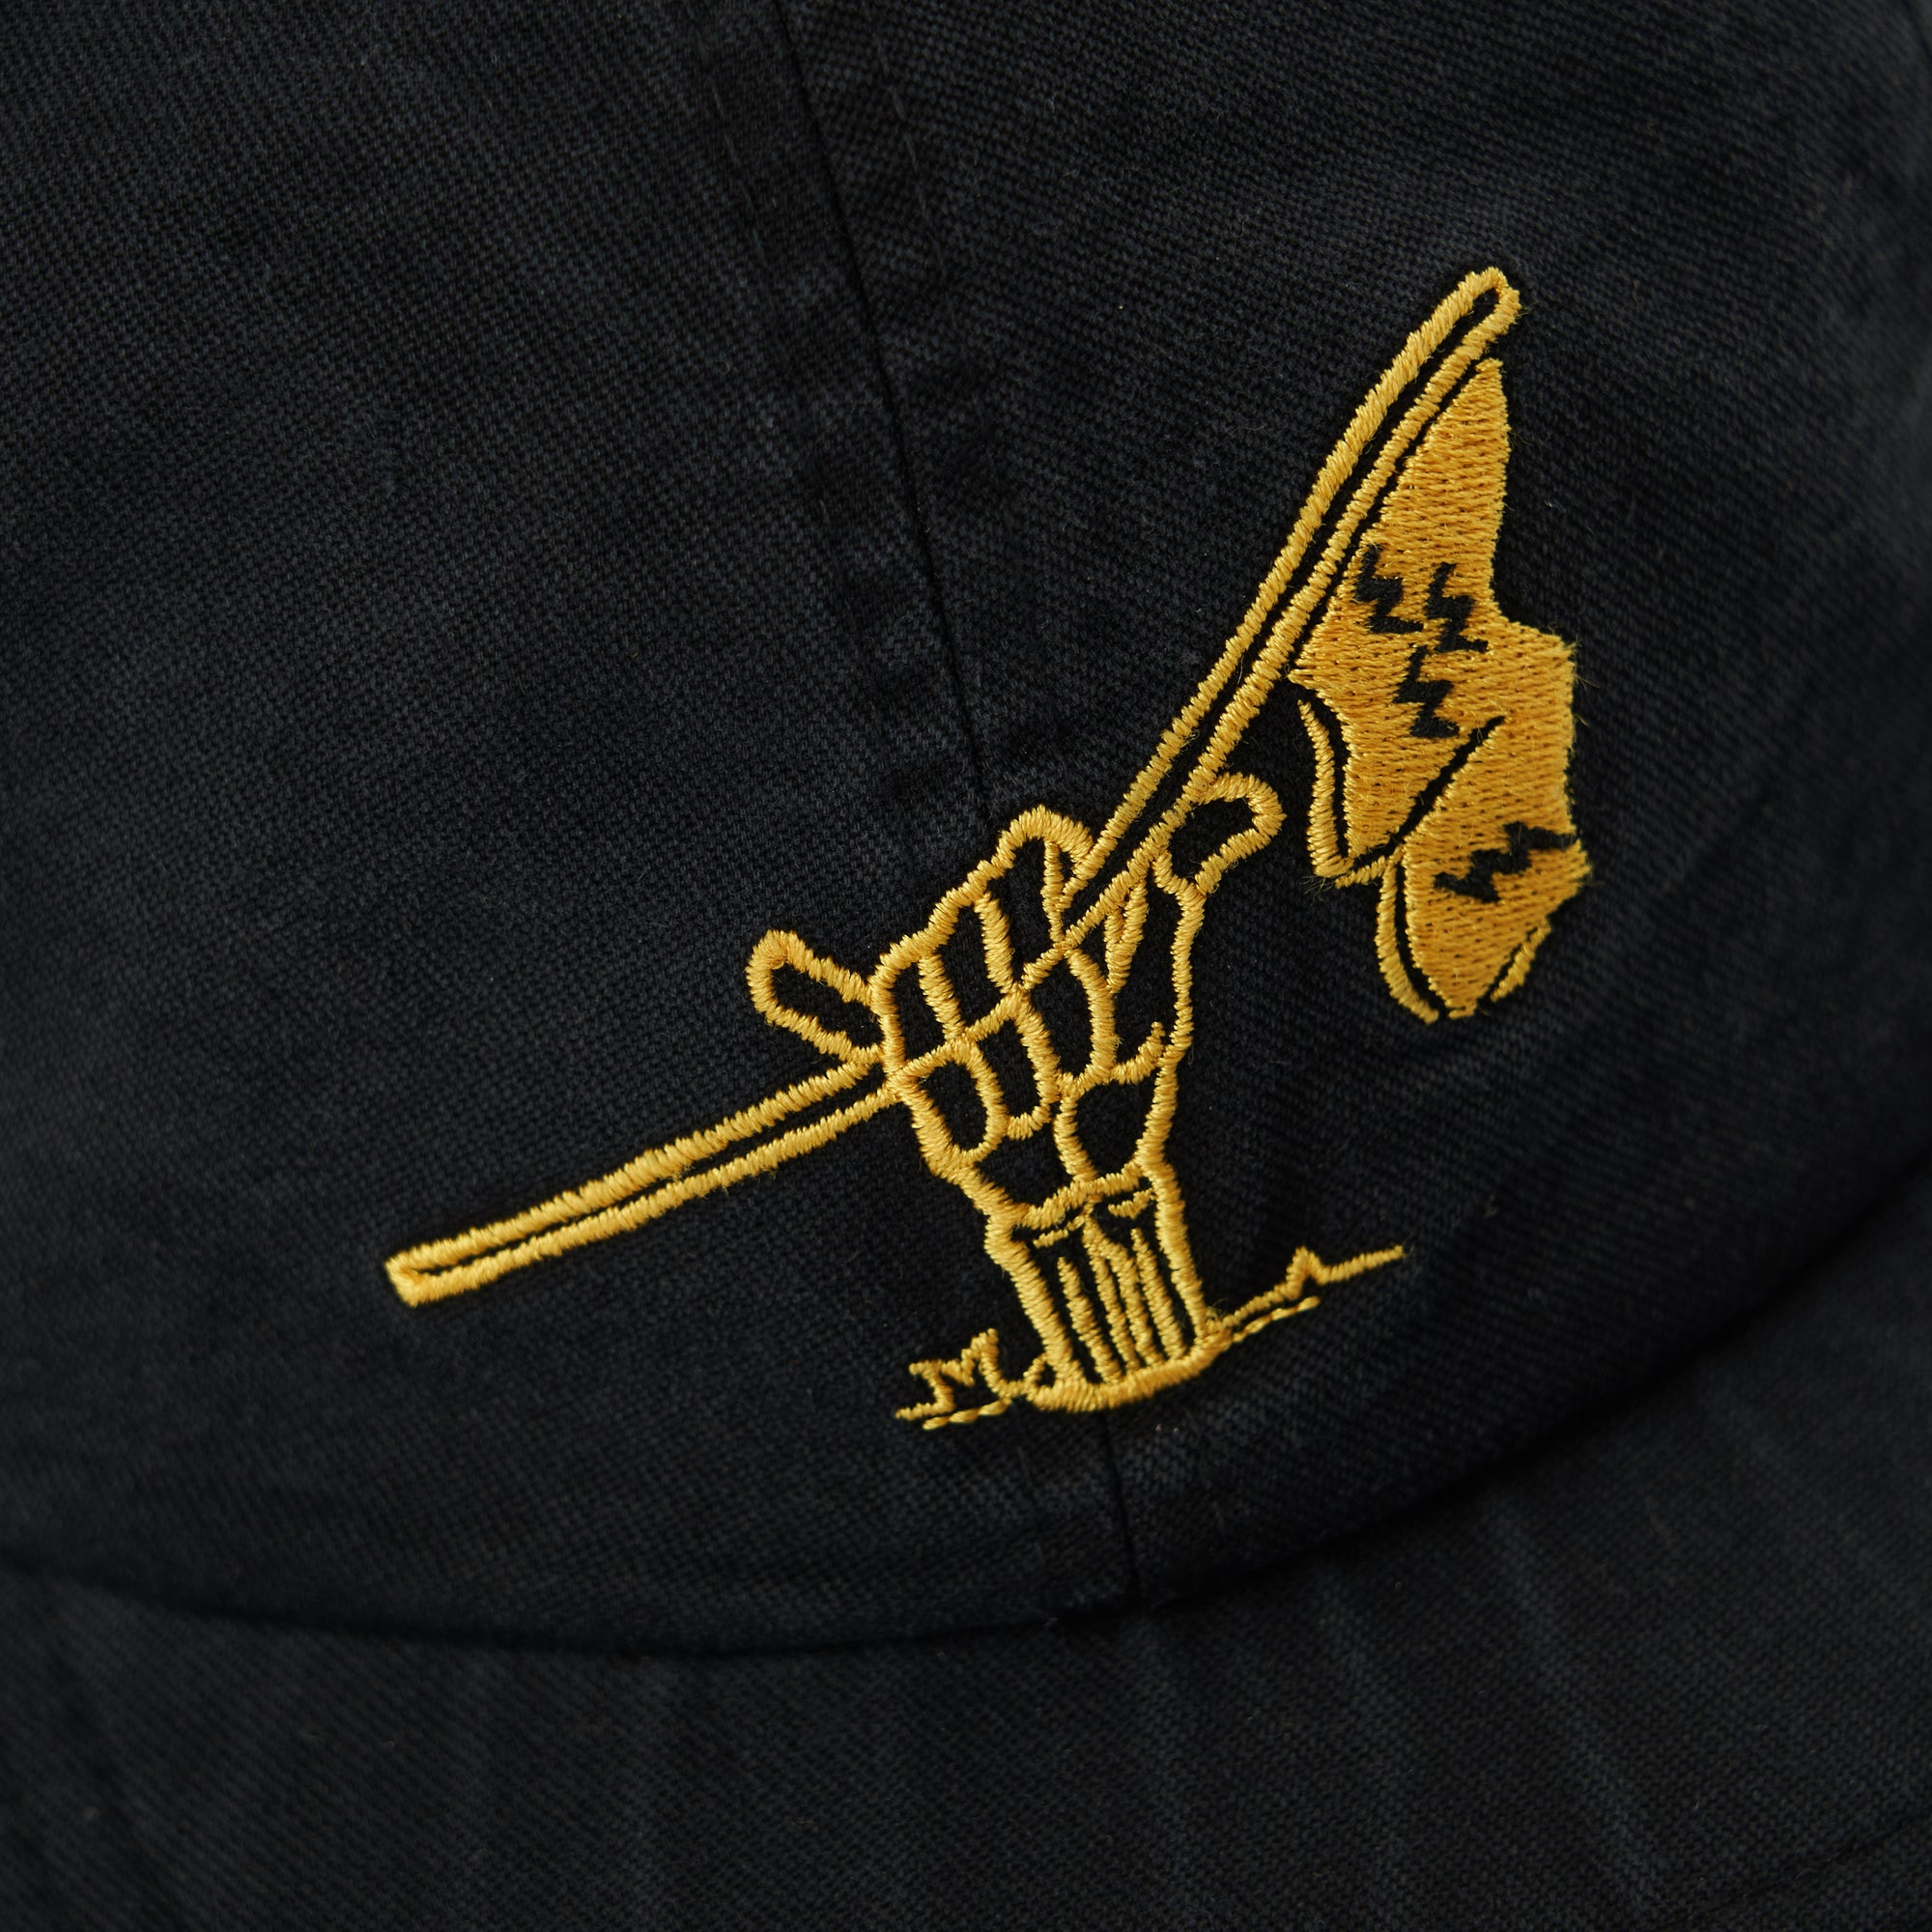 birds-of-condor-electric-black-flag-raiders-golf-hat-dad-cap-front